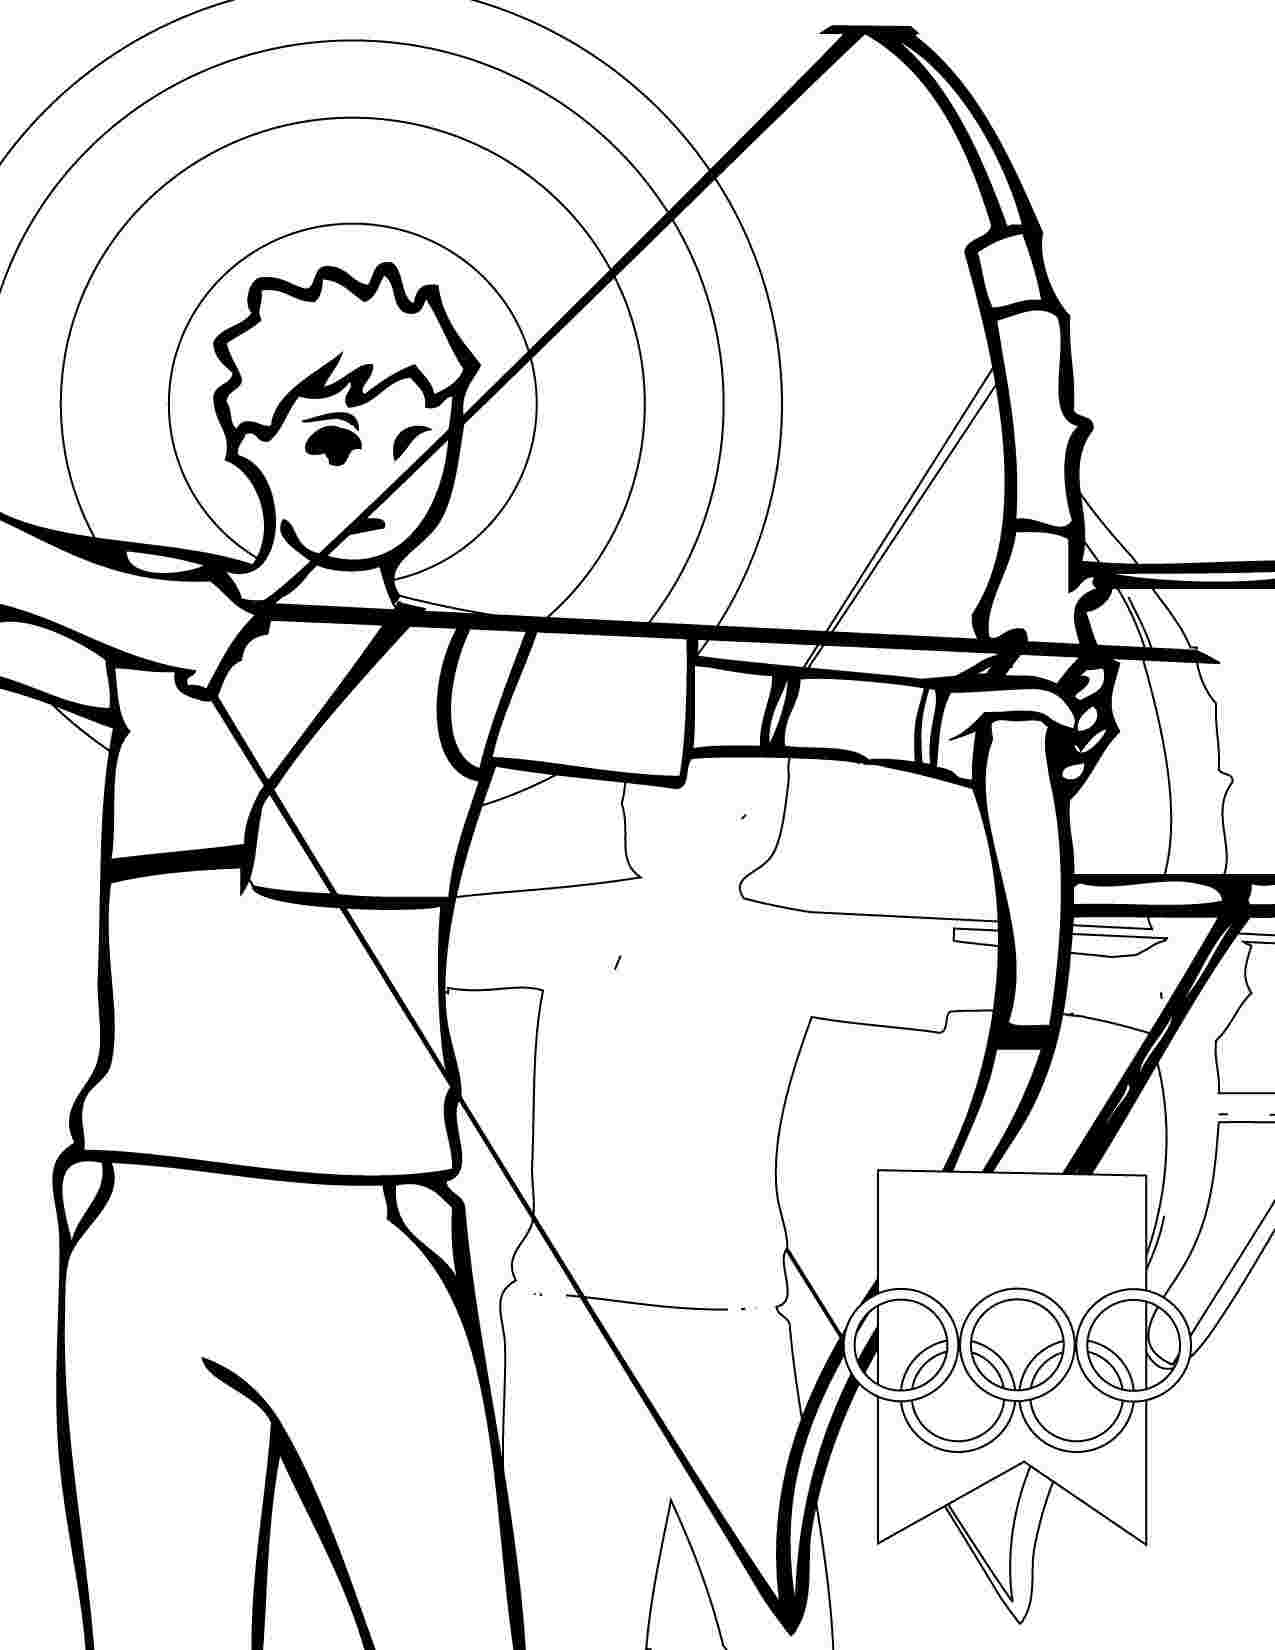 sports colouring pictures printable sports coloring pages for kids free printable sports pictures colouring